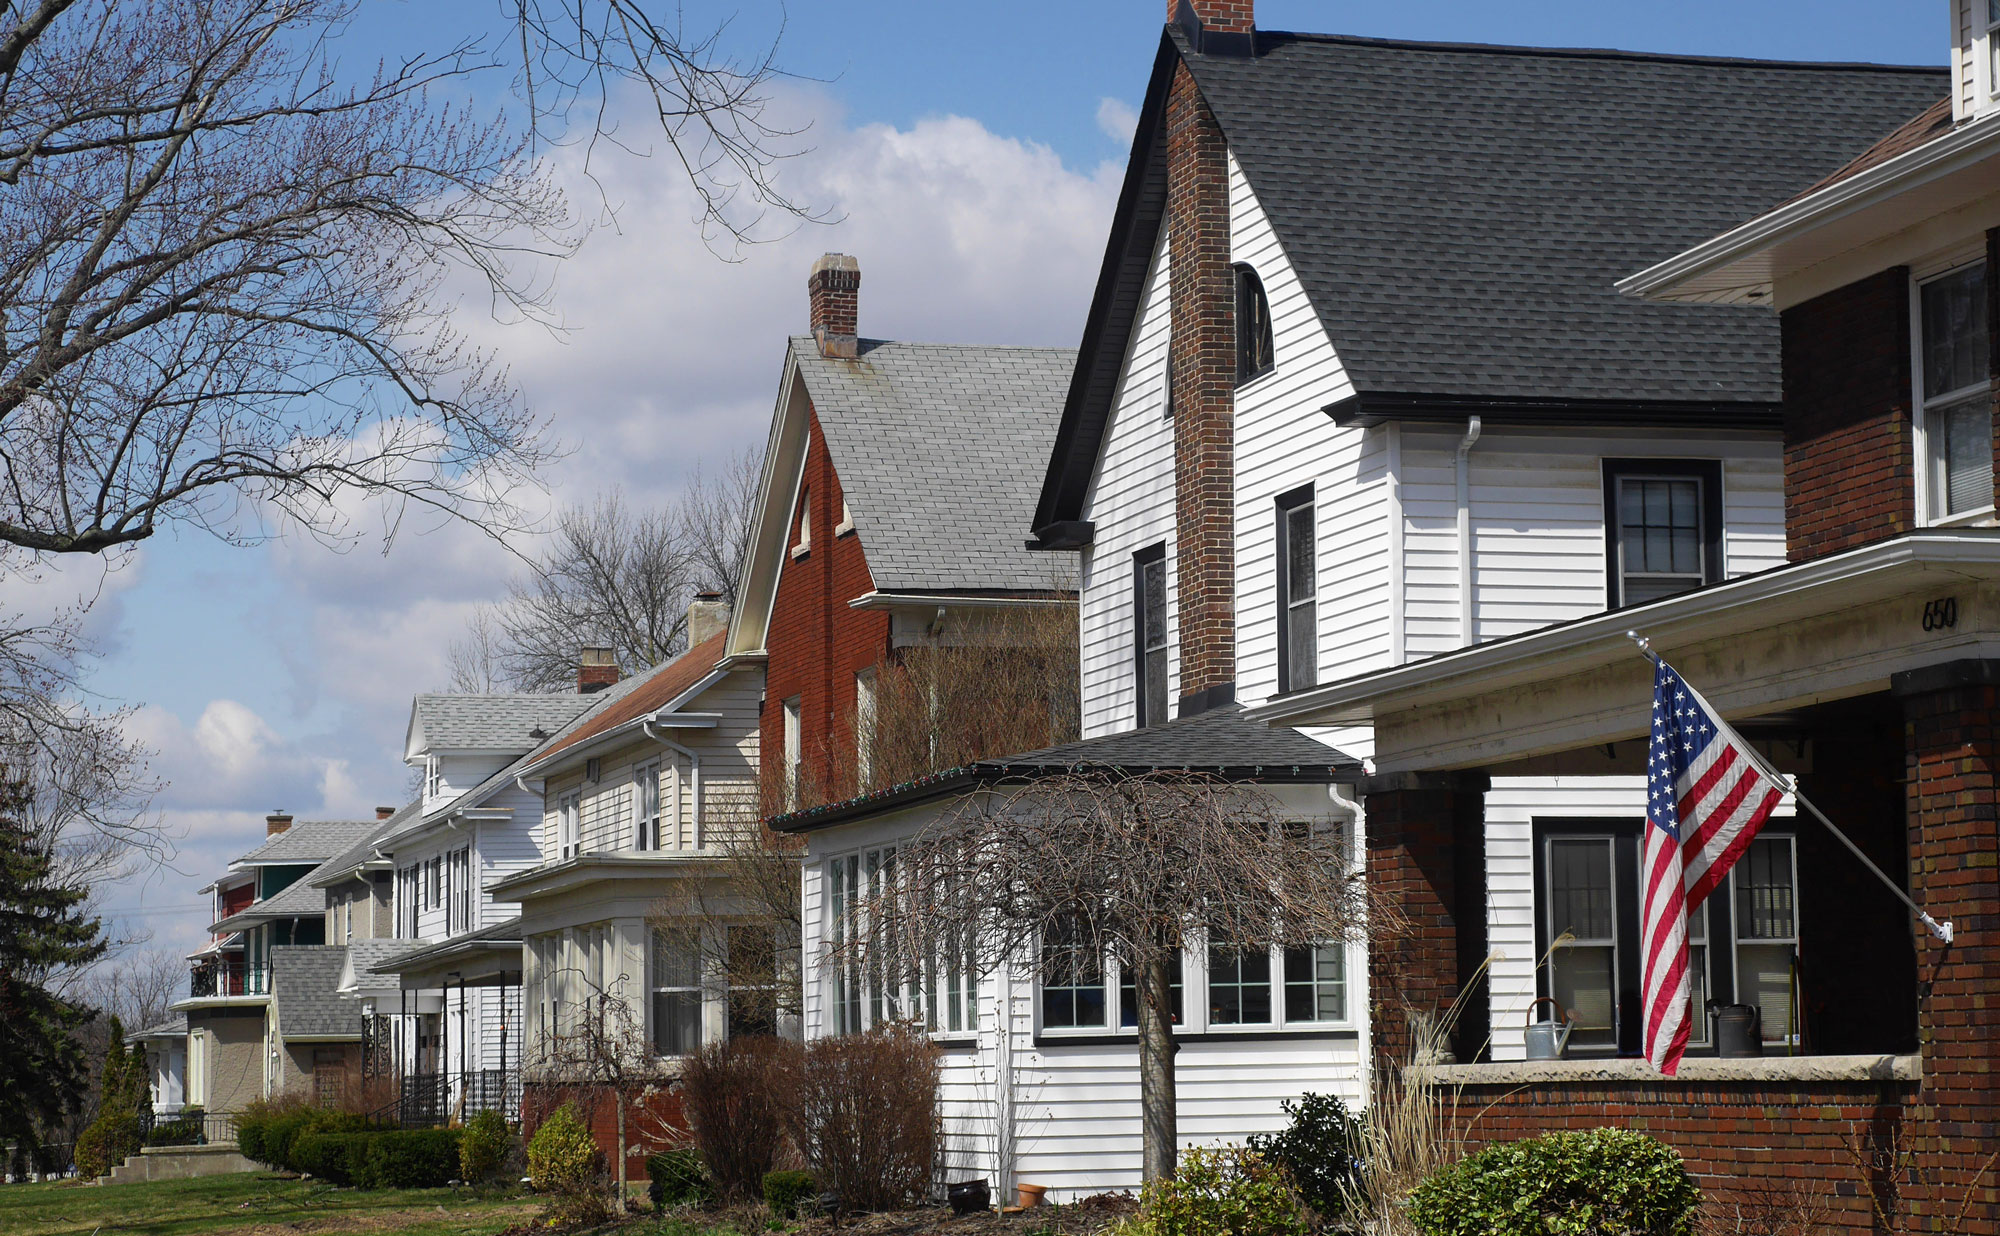 Row of houses in early spring